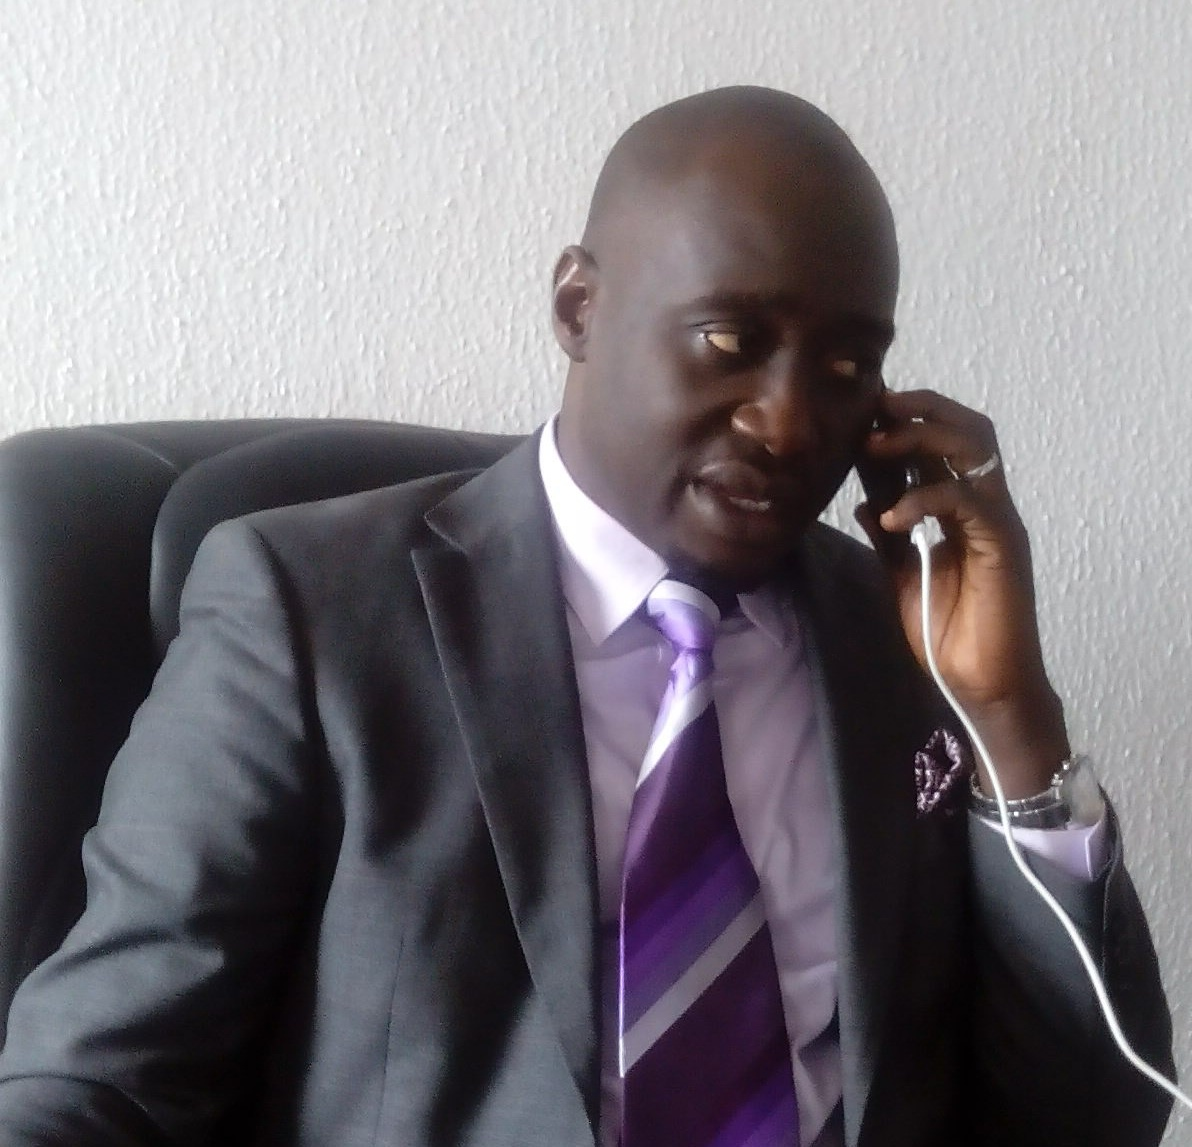 CR: Re-elected House Of Reps Member Lashes Out At Wrong Deed